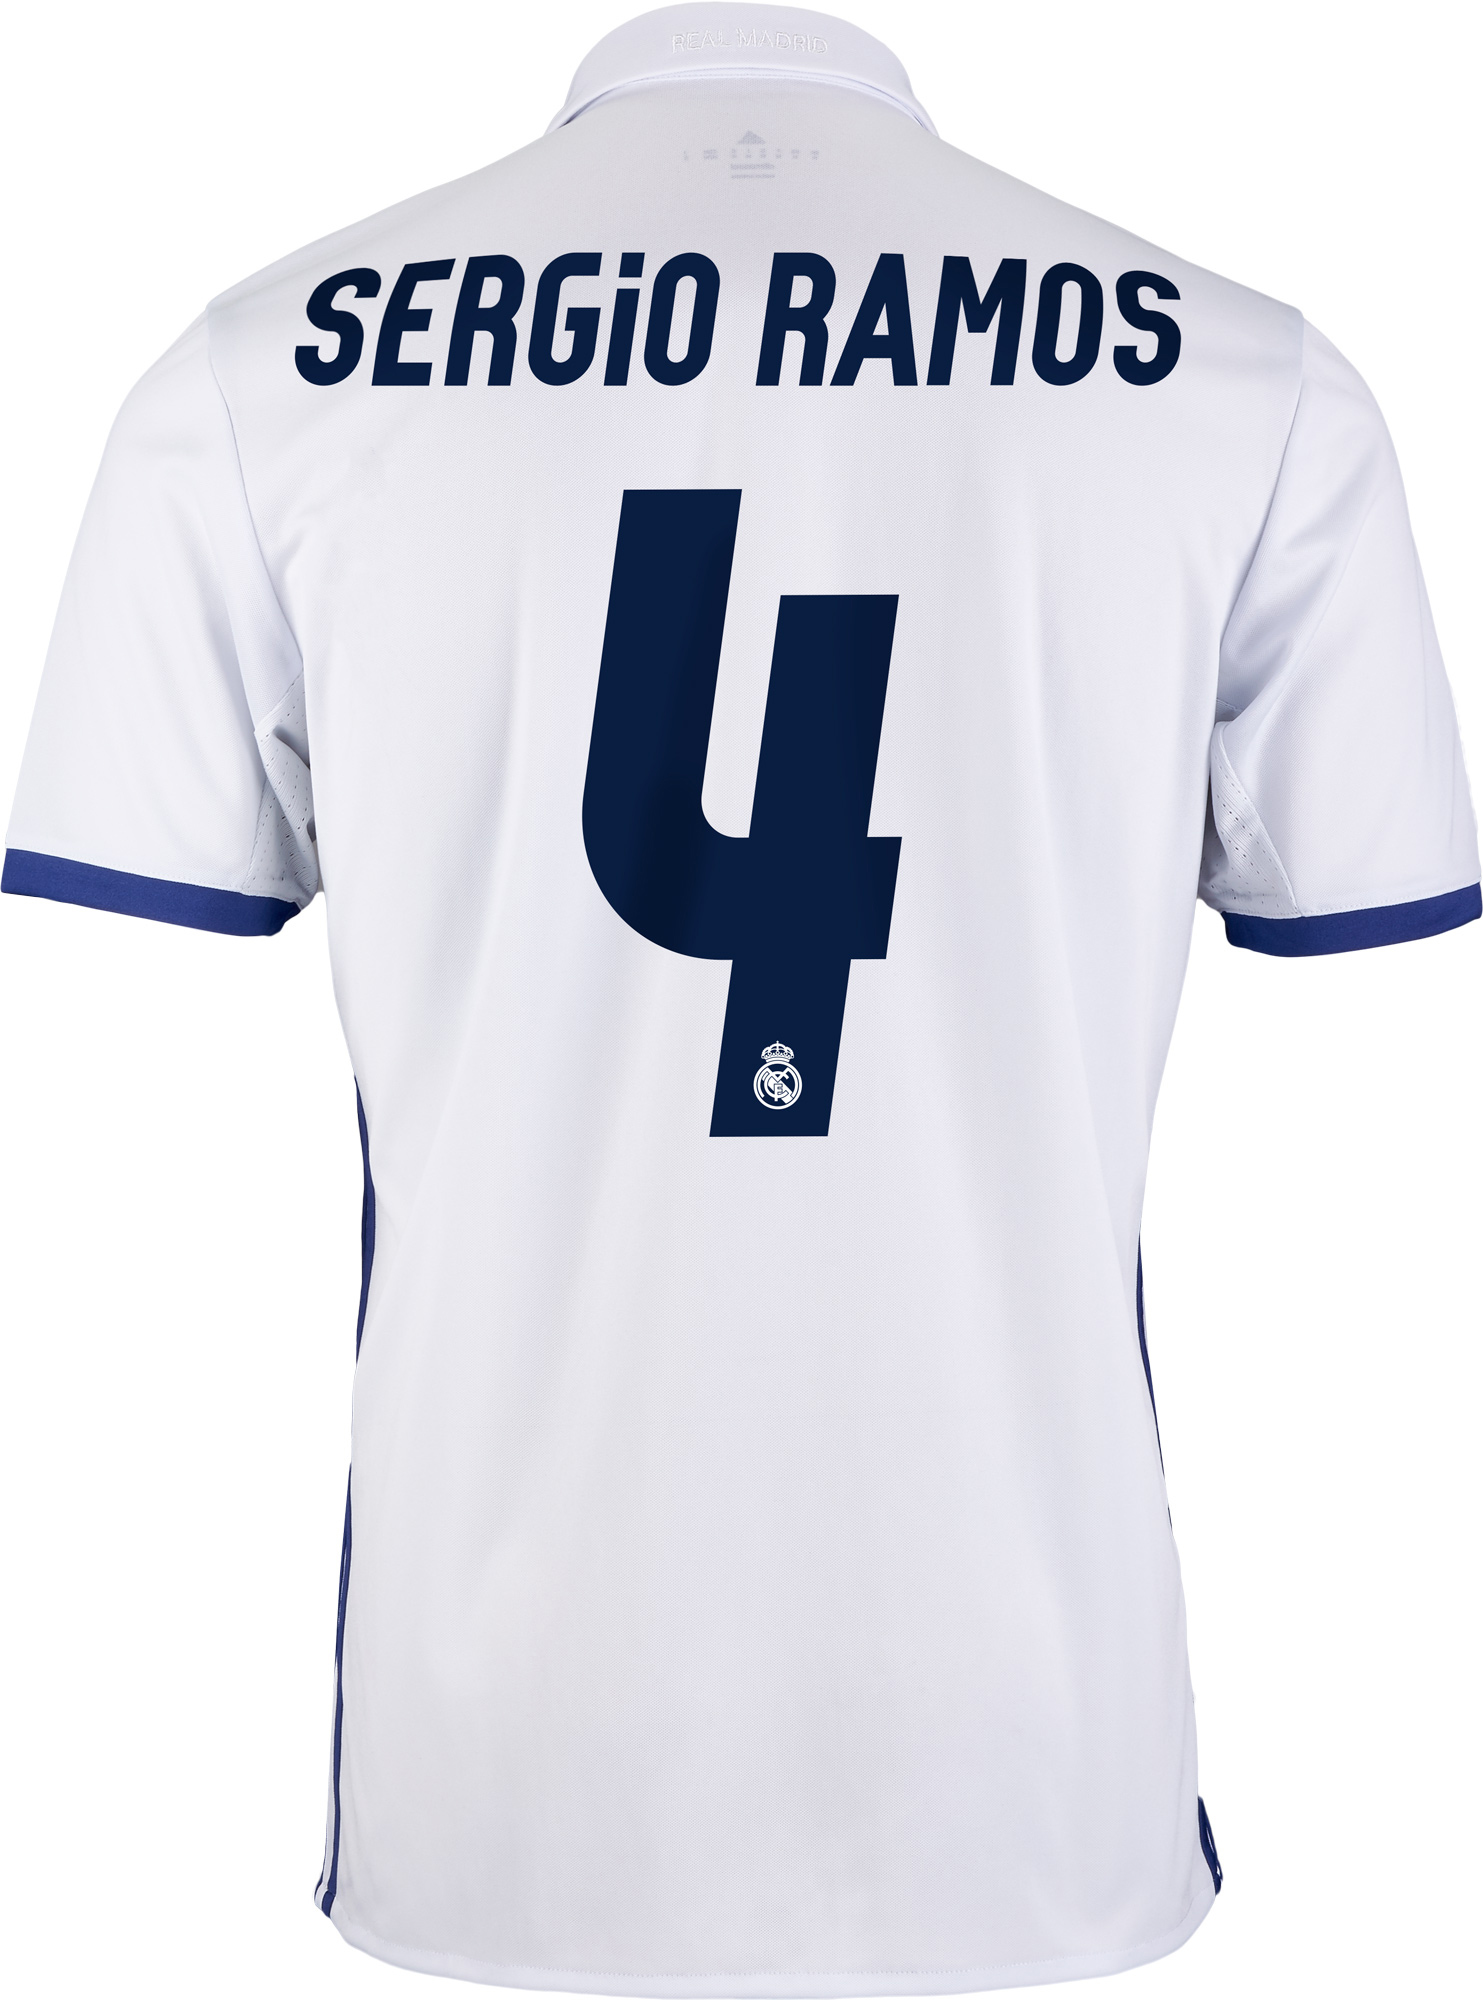 sale retailer de04f 731a3 Sergio Ramos Real Madrid Jersey - 2016-17 Real Madrid Jerseys